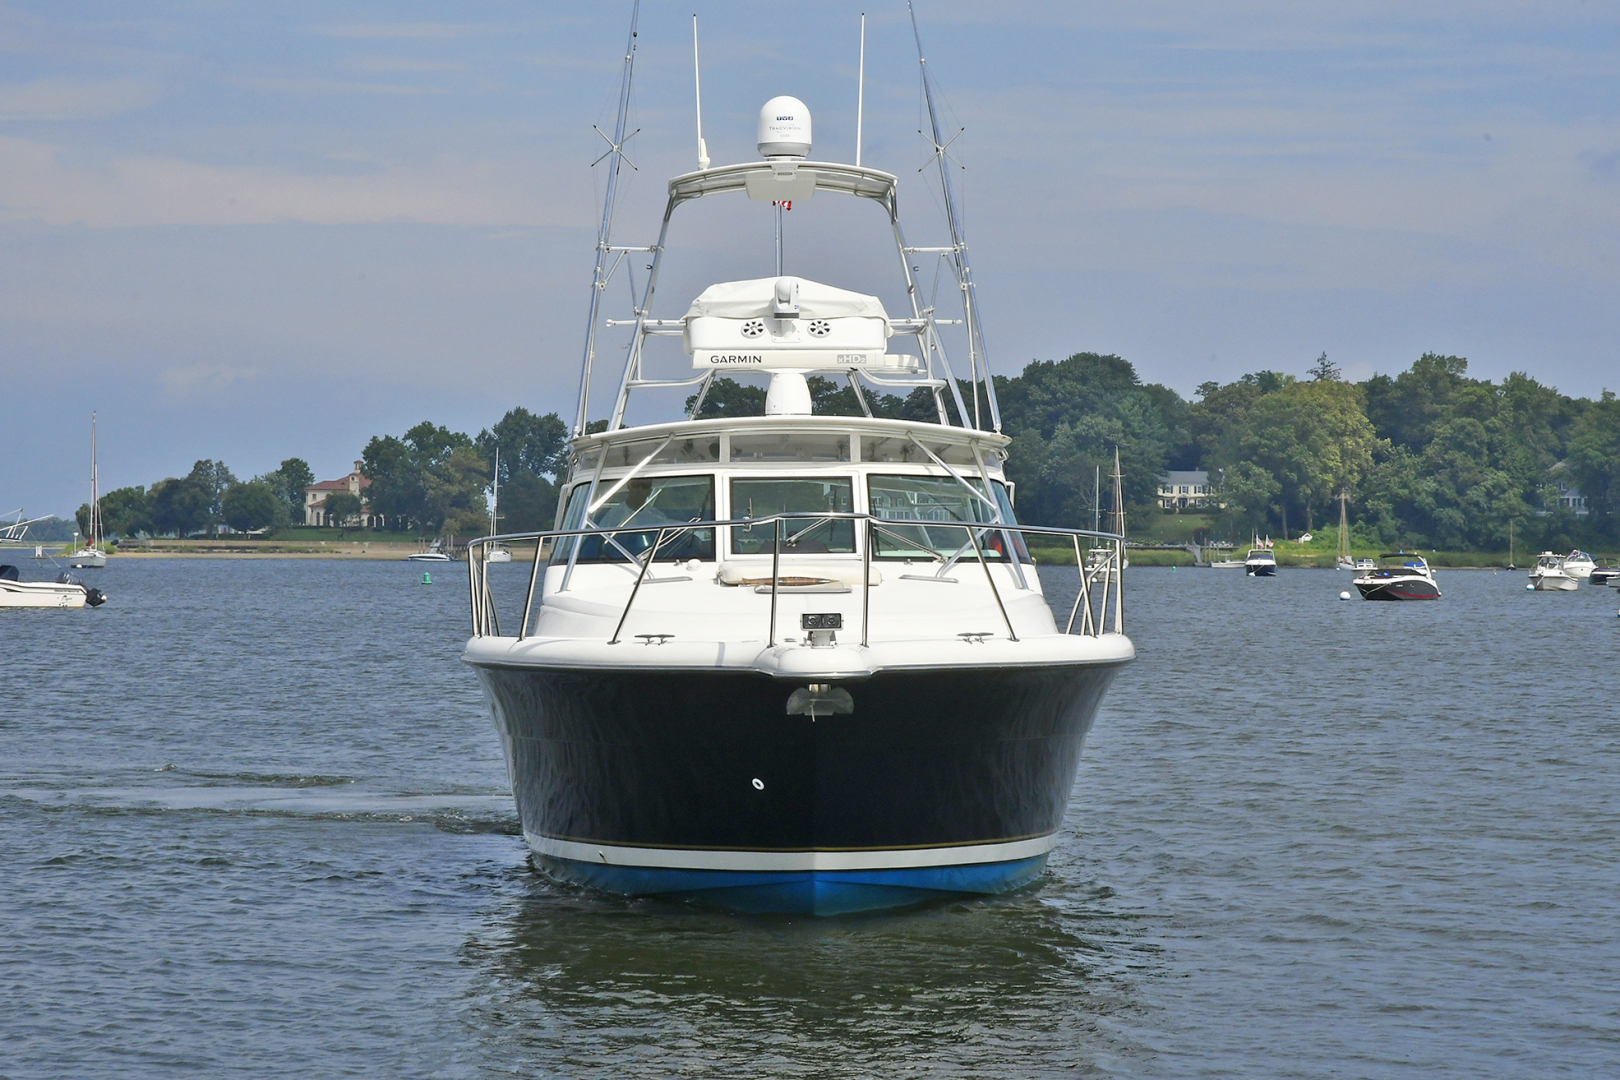 Tiara-3800 Open 2003-Catch 22 Oyster Bay-New York-United States-Bow-1224905 | Thumbnail